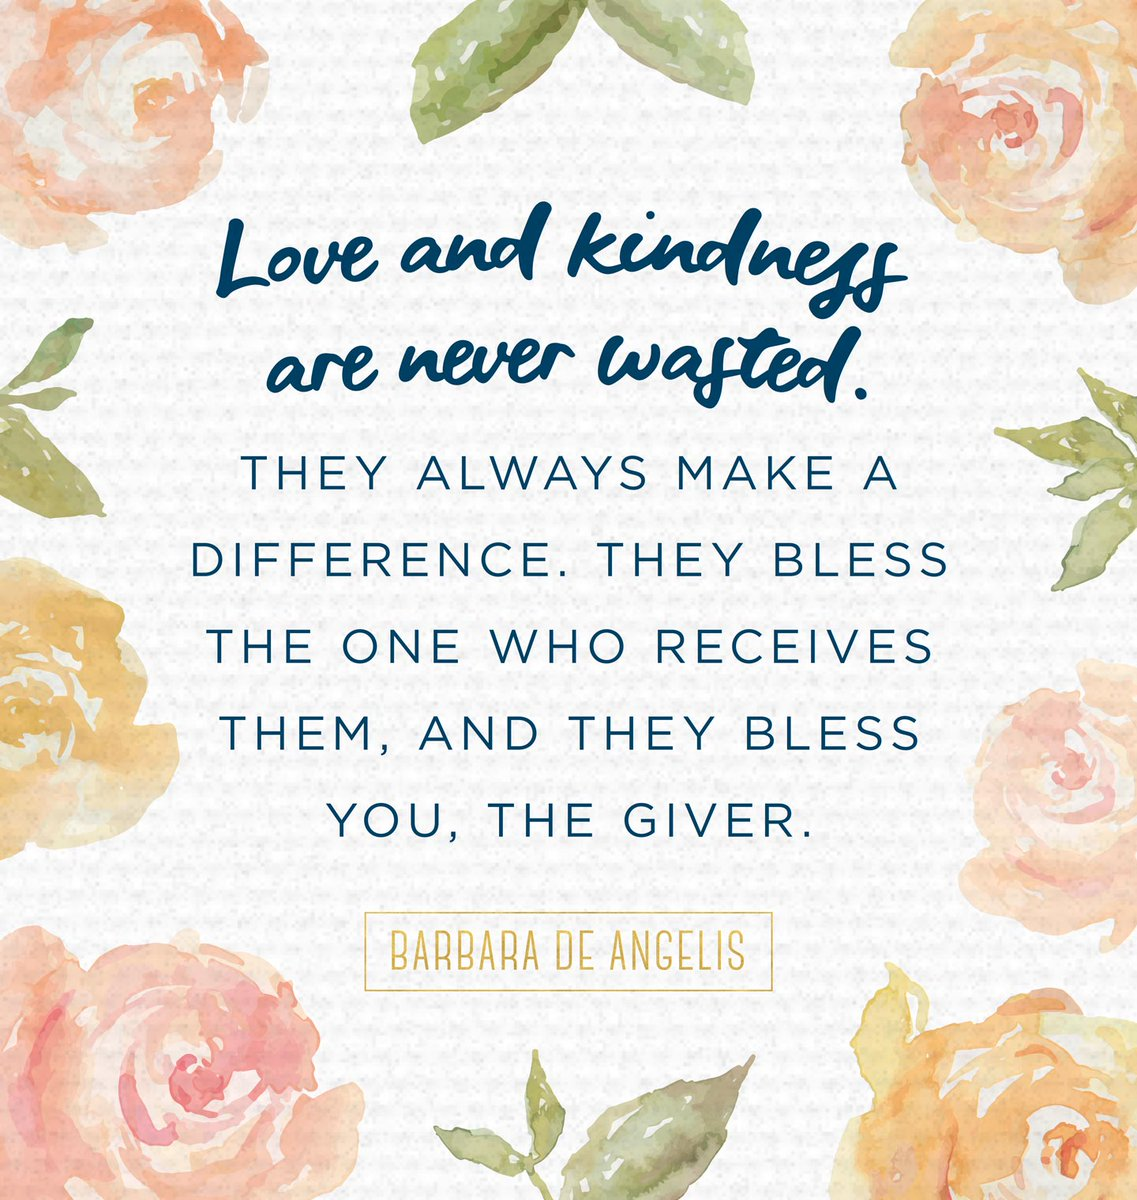 kindness costs nothing but can achieve so much #WorldKindnessDay